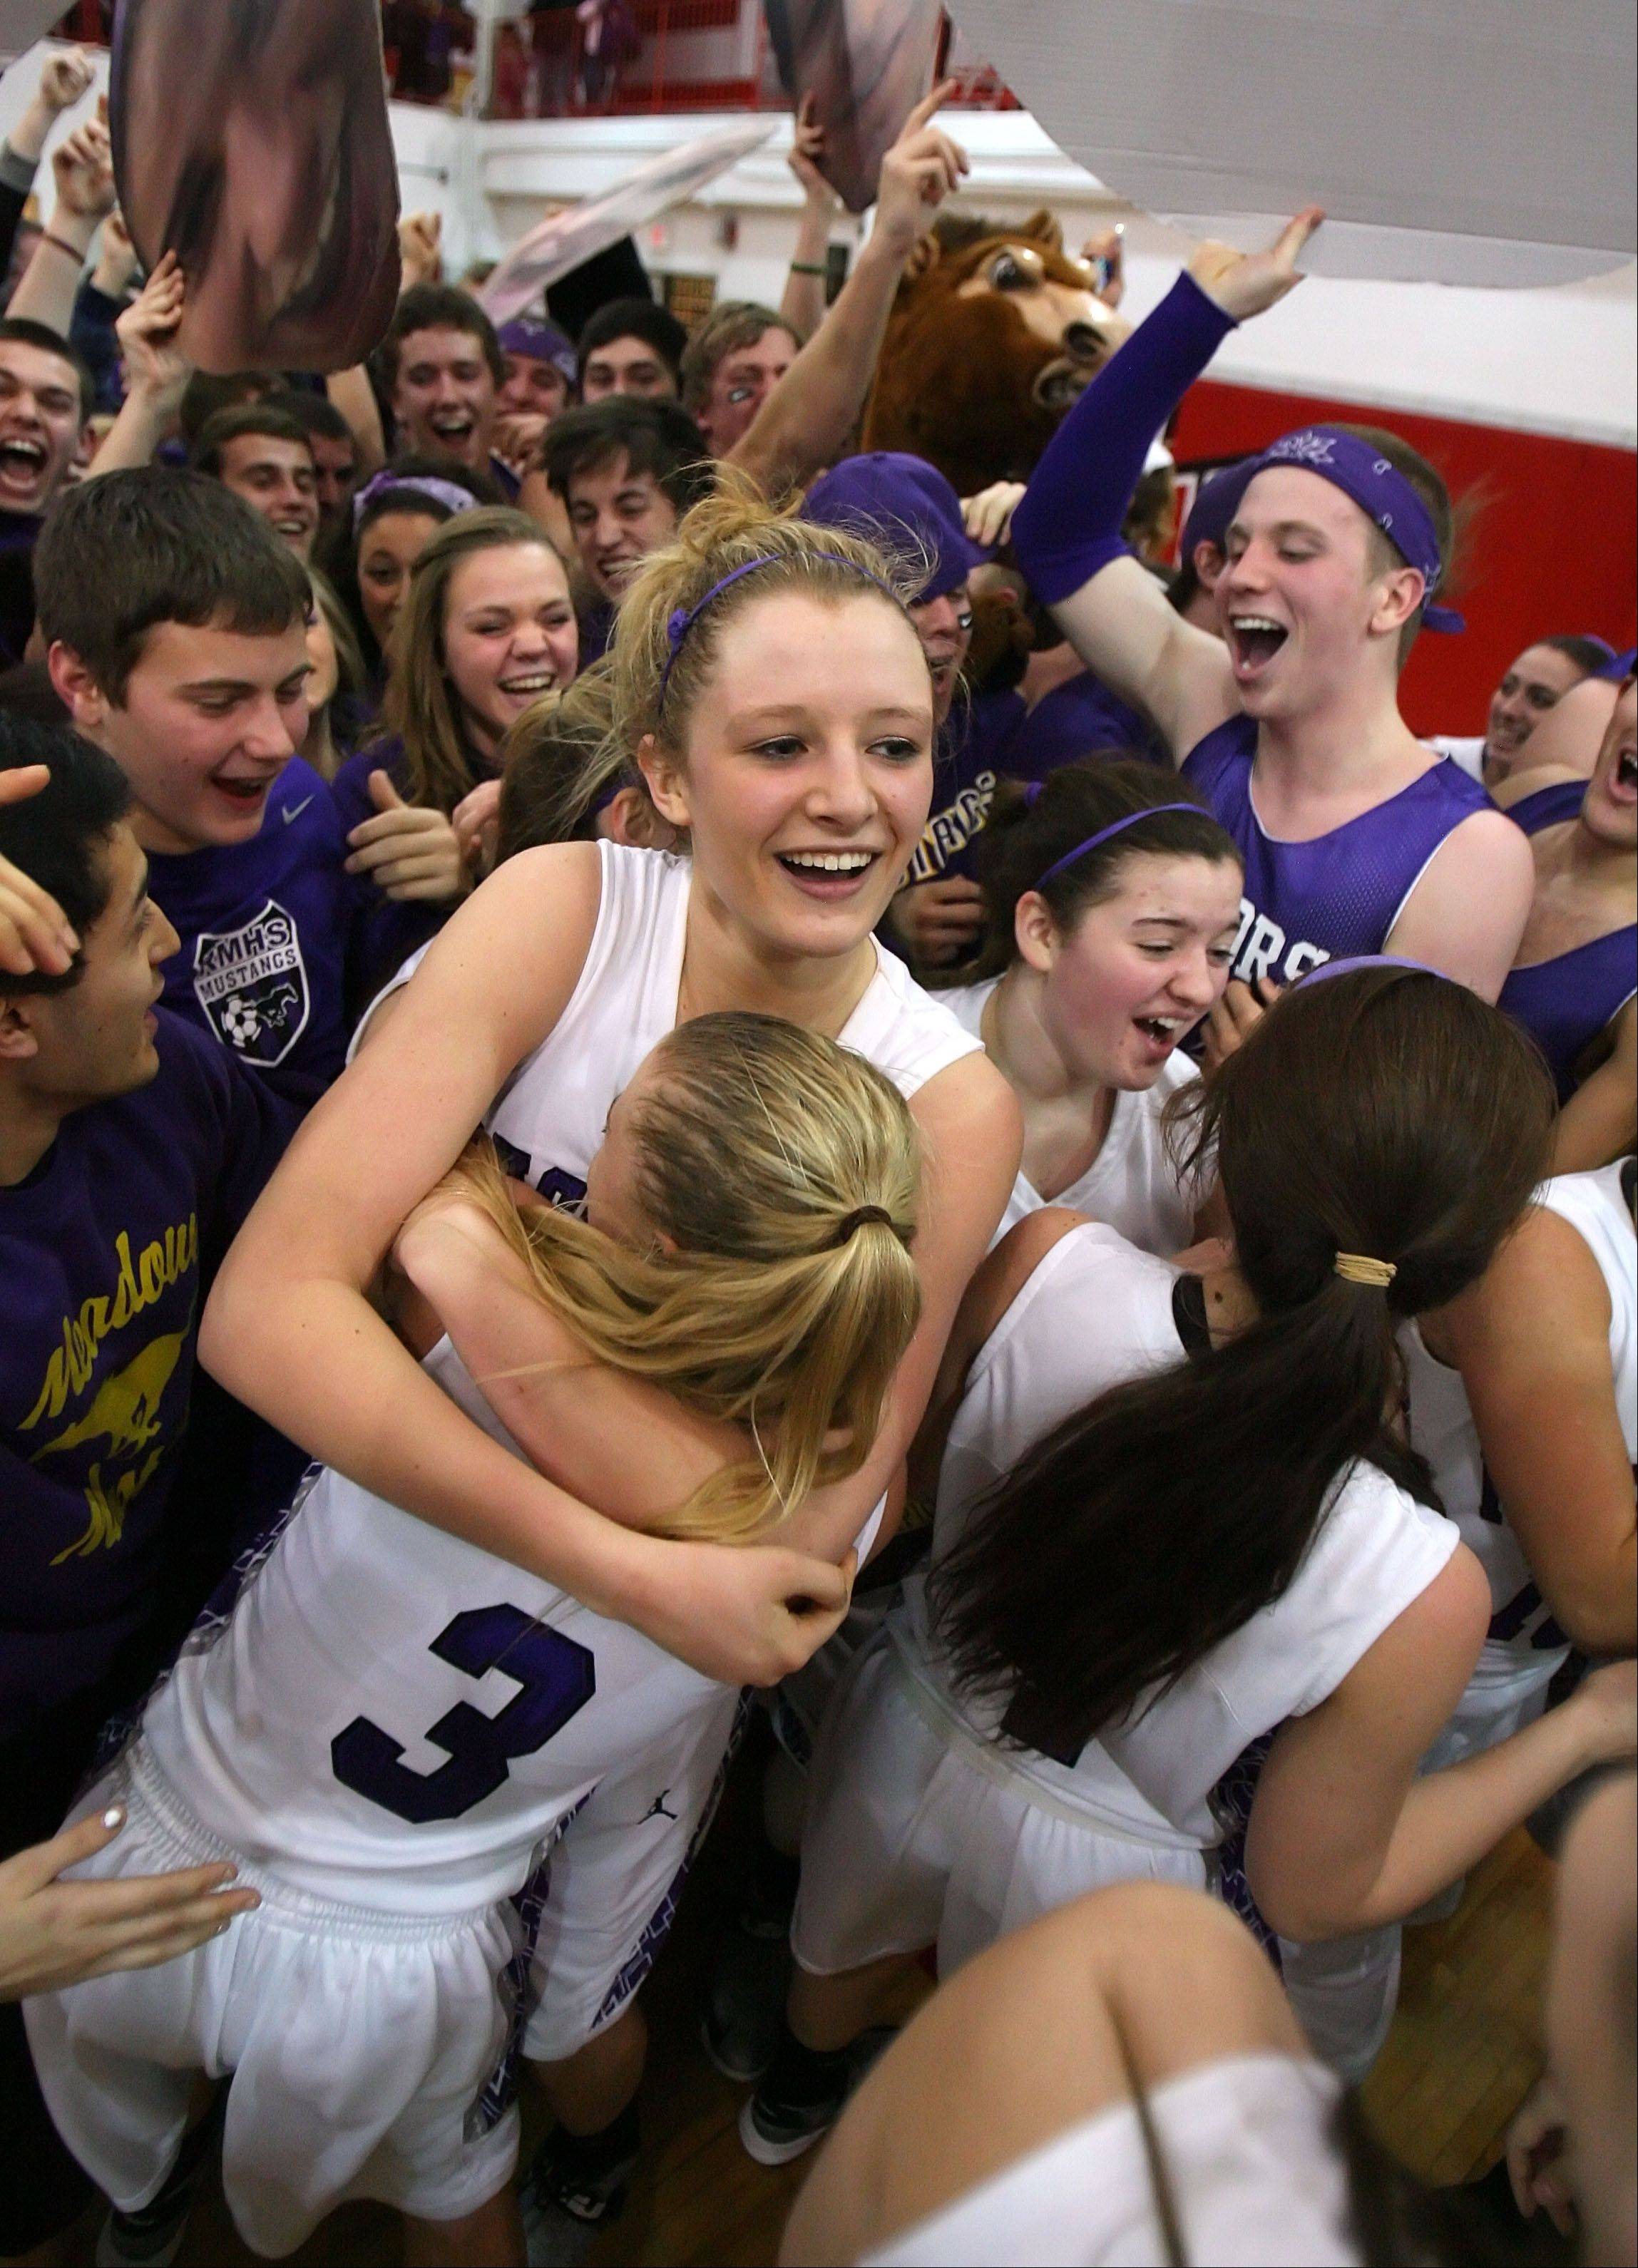 Rolling Meadows' Jenny Vliet is hoisted above the fray by teammate Jackie Kemph as the fans rush the floor after the Mustangs topped Evanston in Class 4A Niles West supersectional play Monday night in Skokie.